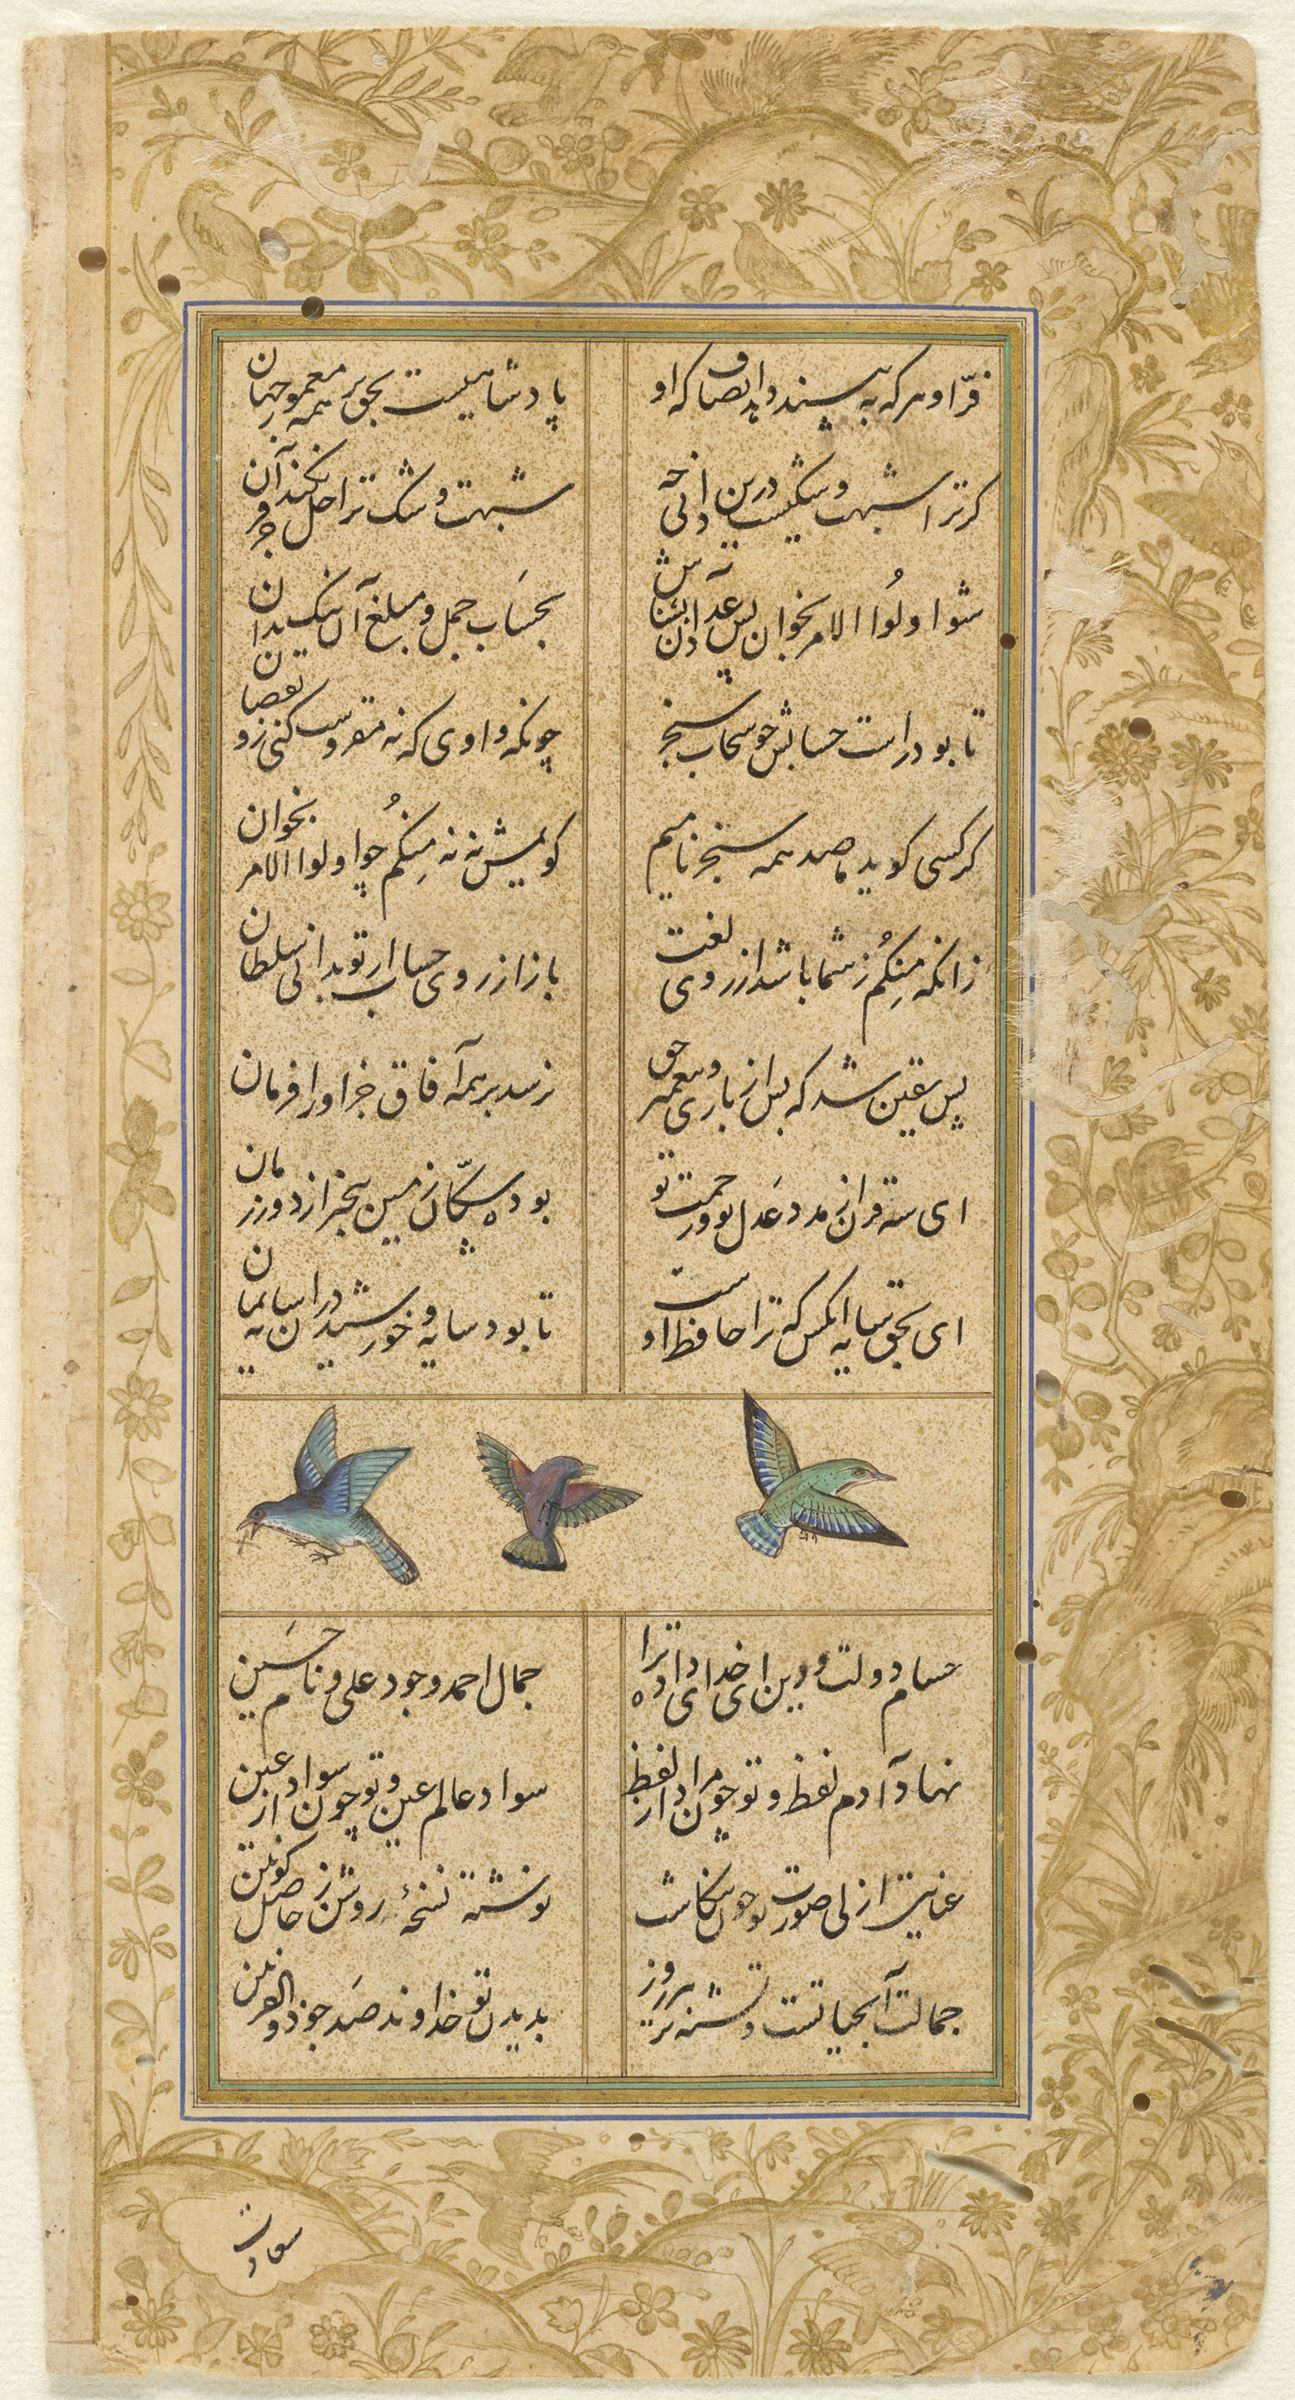 An Interlude Of Birds (Painting, Verso; Text, Recto), Folio 307 From A Manuscript Of The Divan Of Anvari